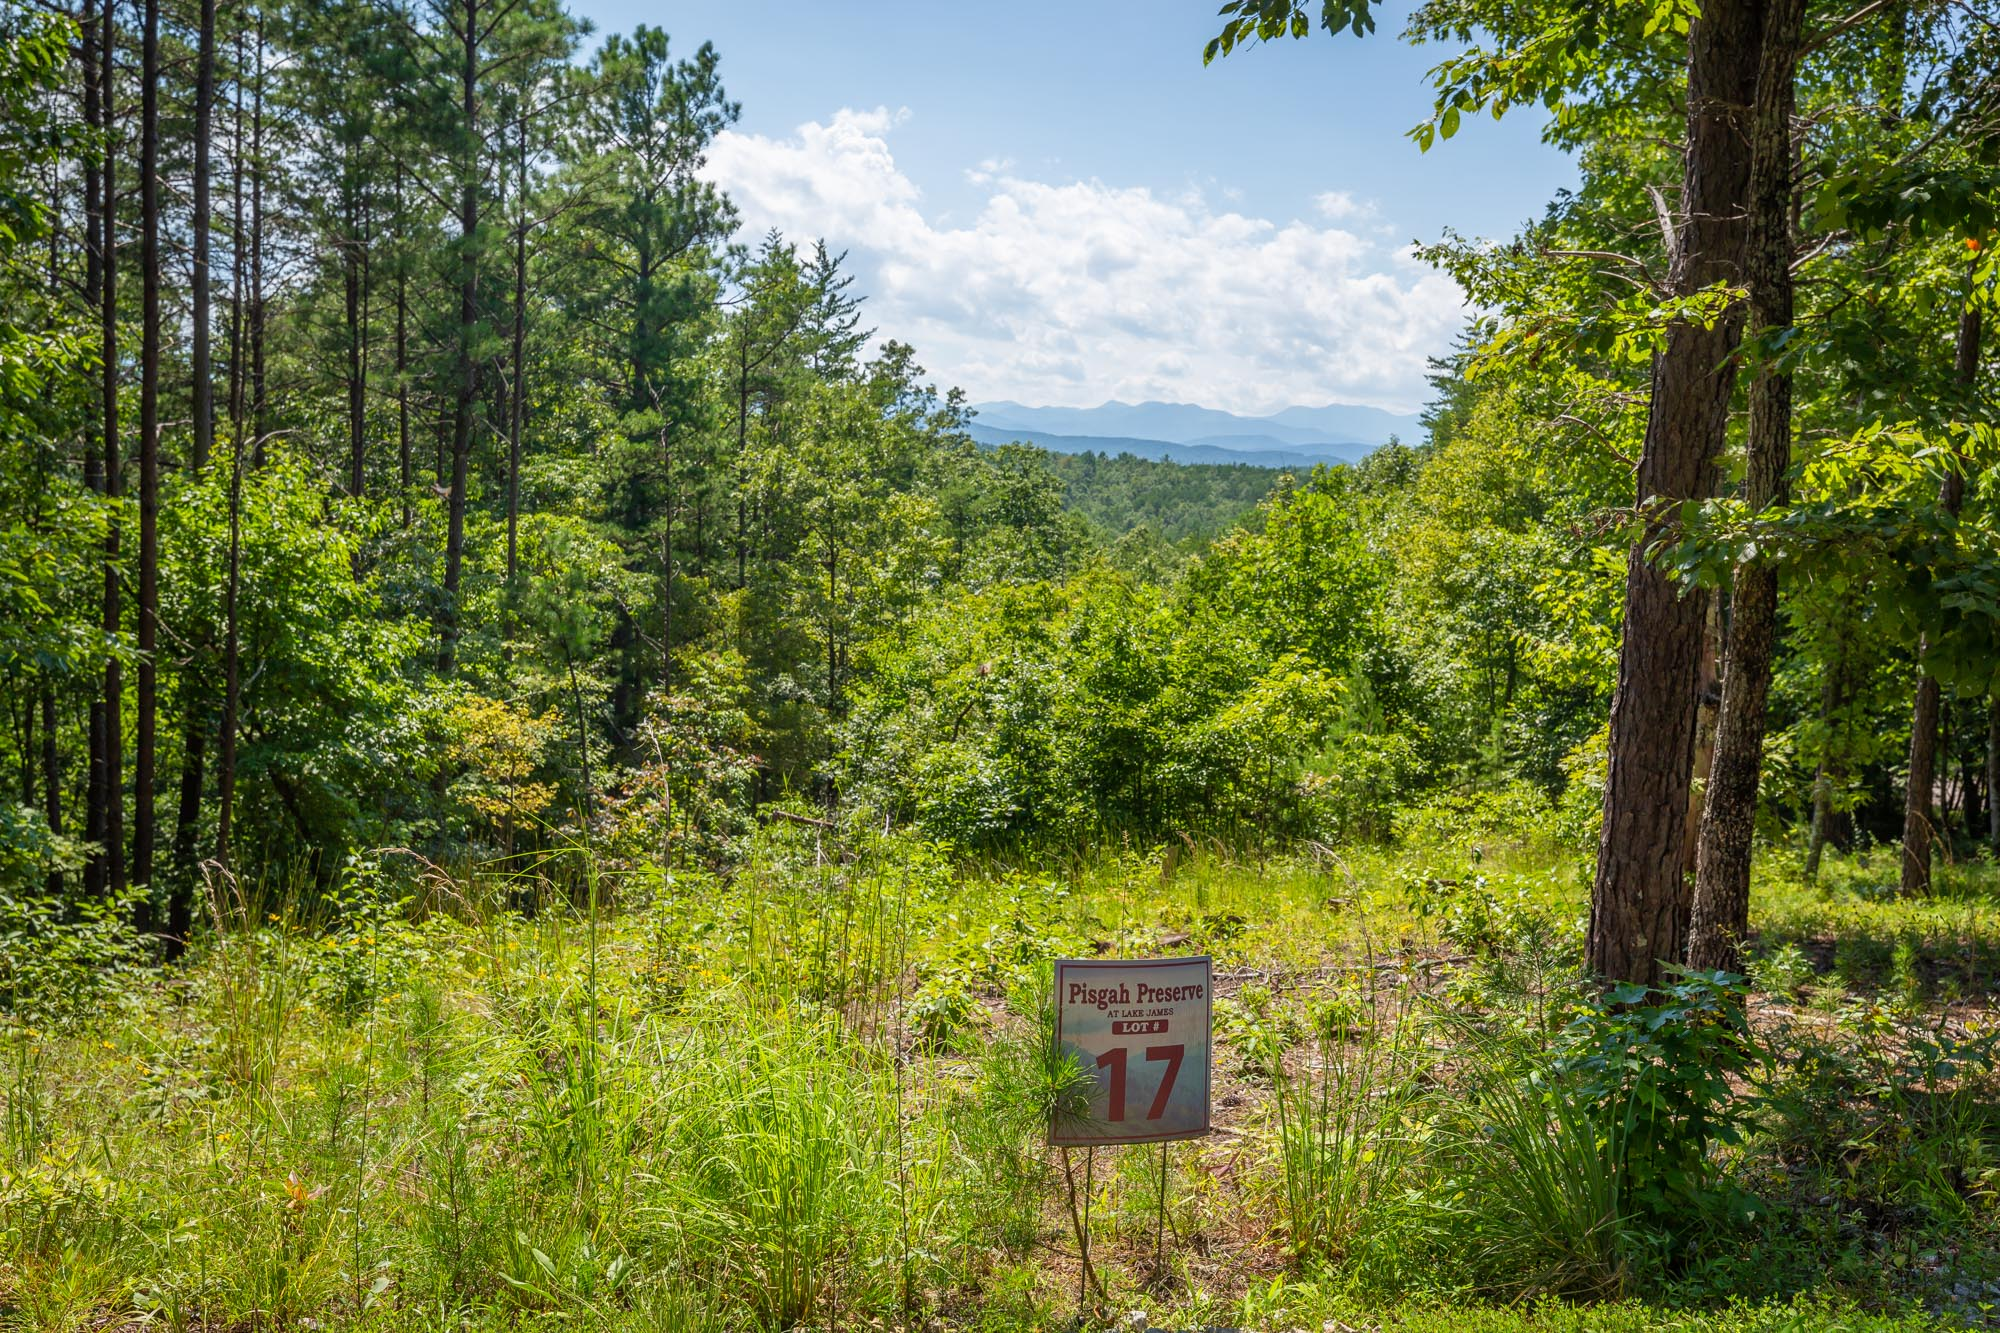 Pisgah Preserve Lot 17.jpg